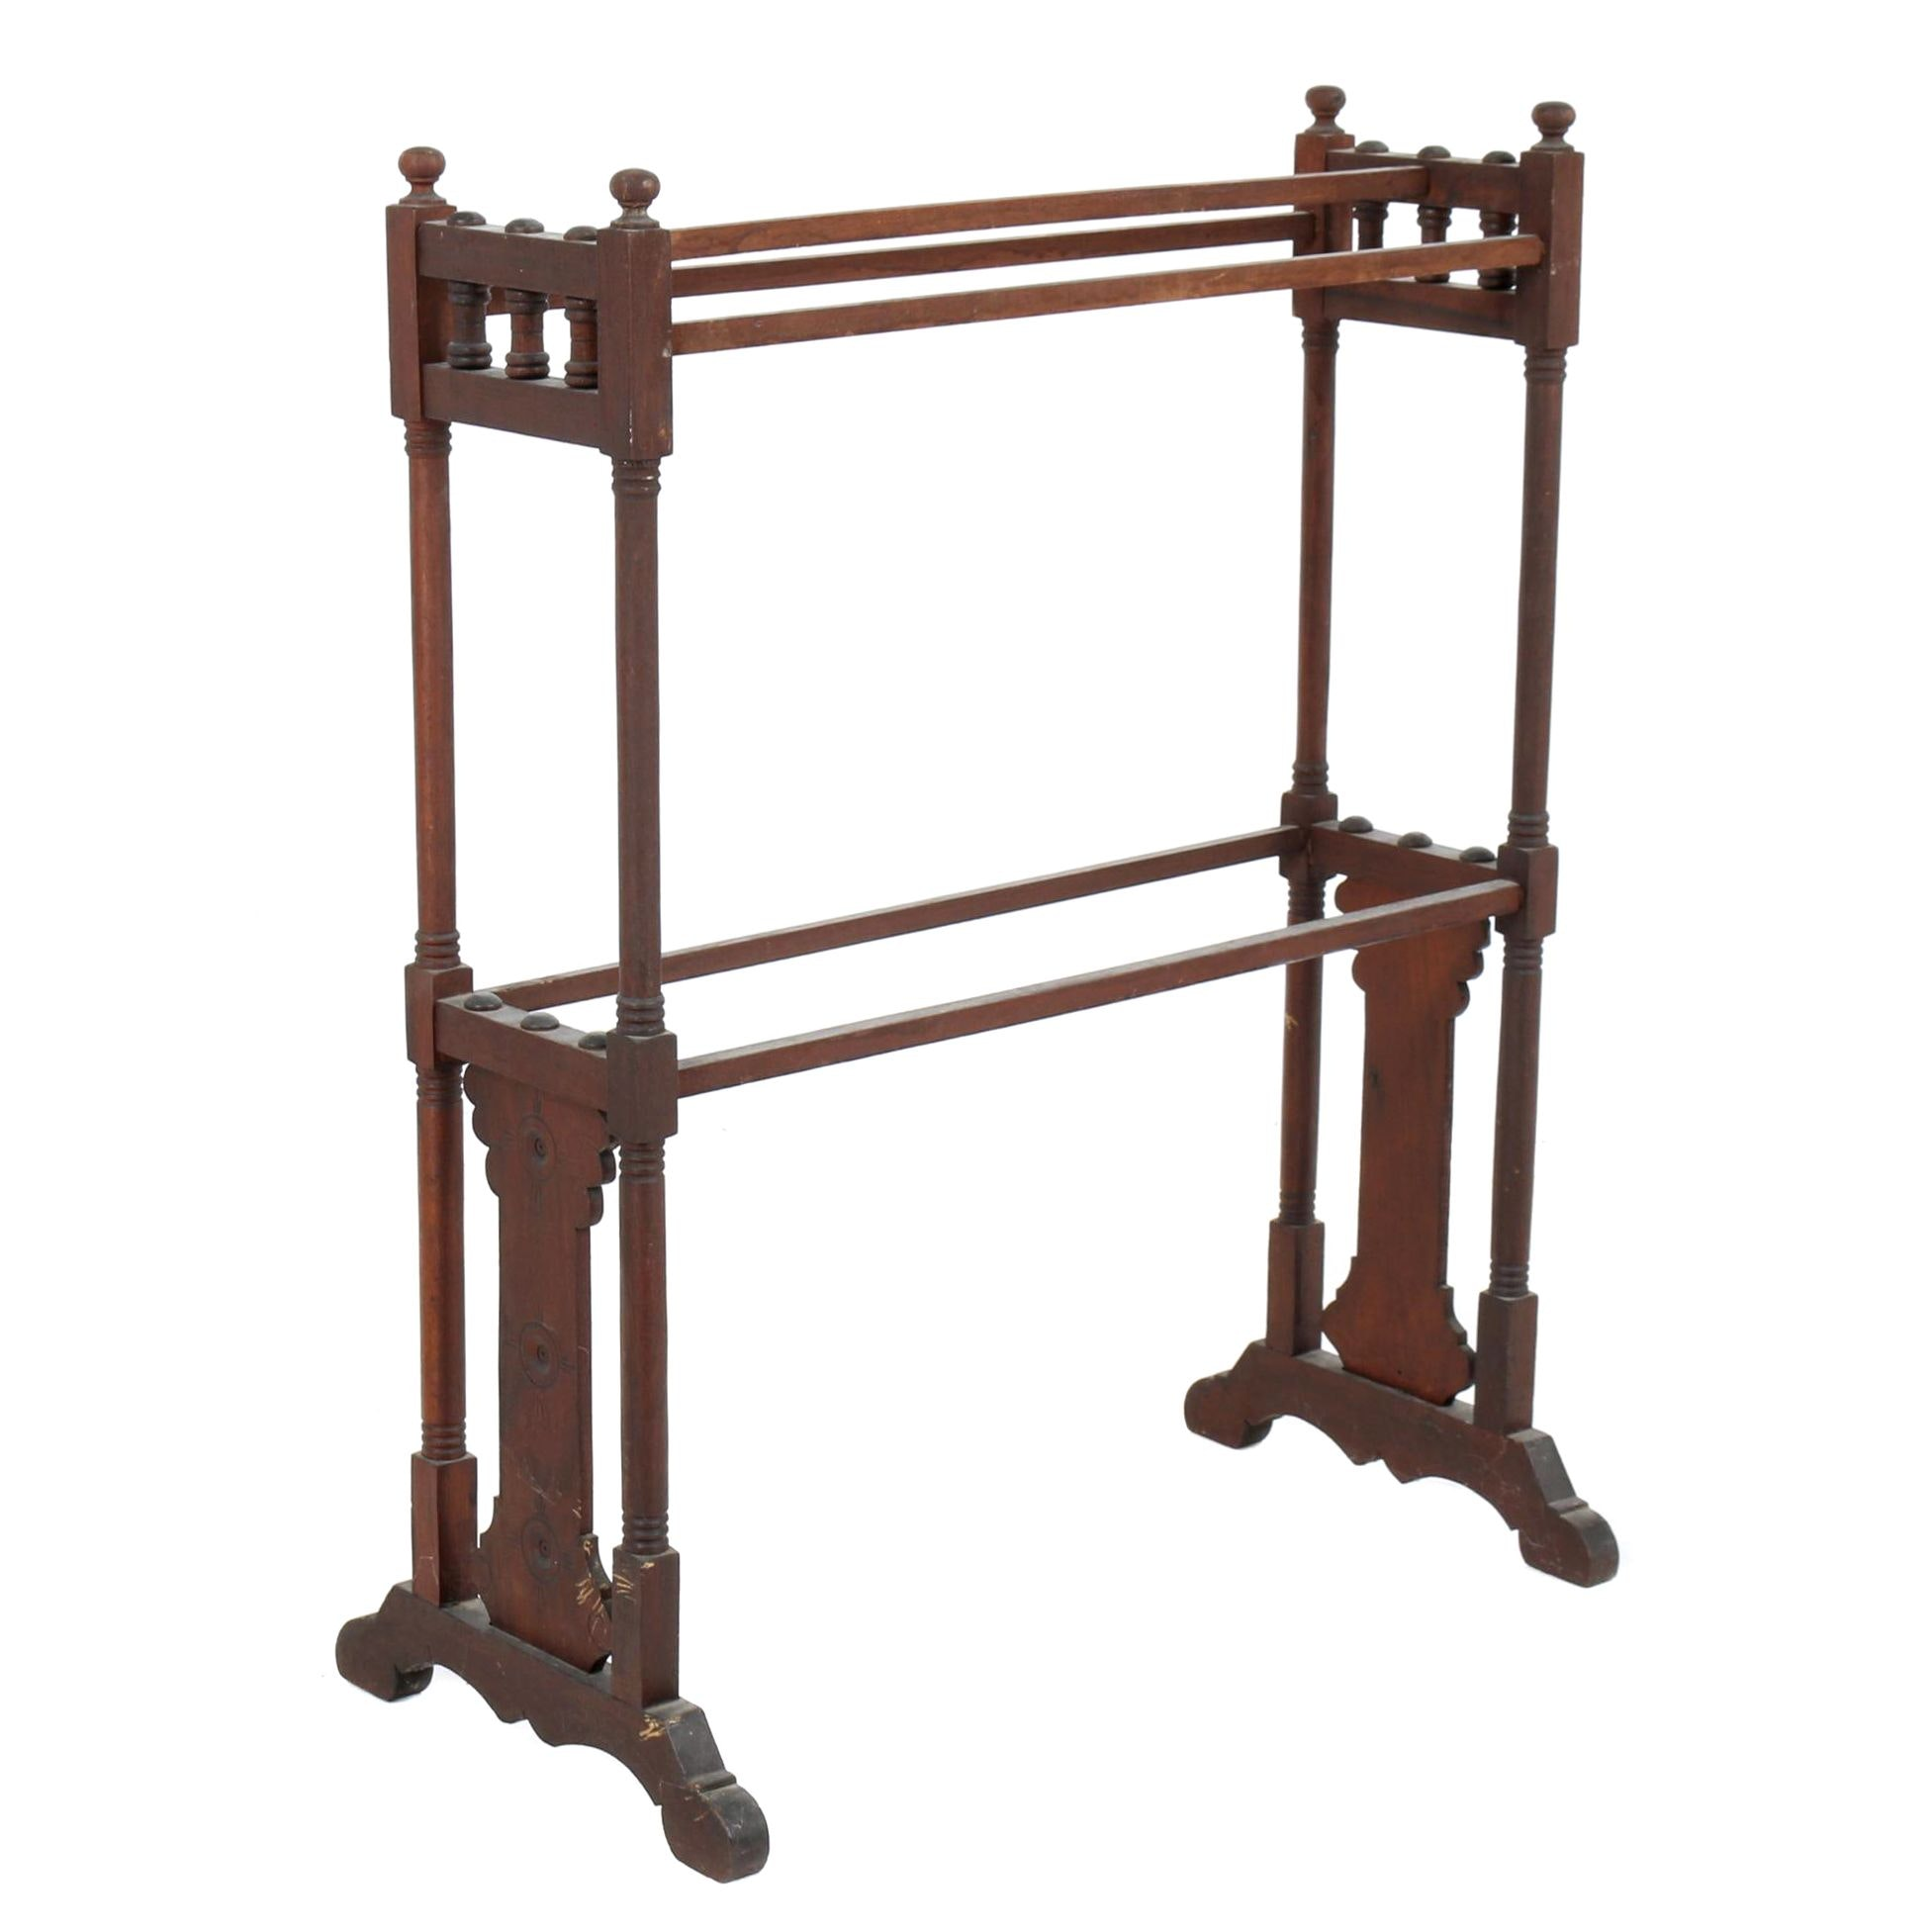 Eastlake Victorian Walnut Quilt Rack, Late 19th Century